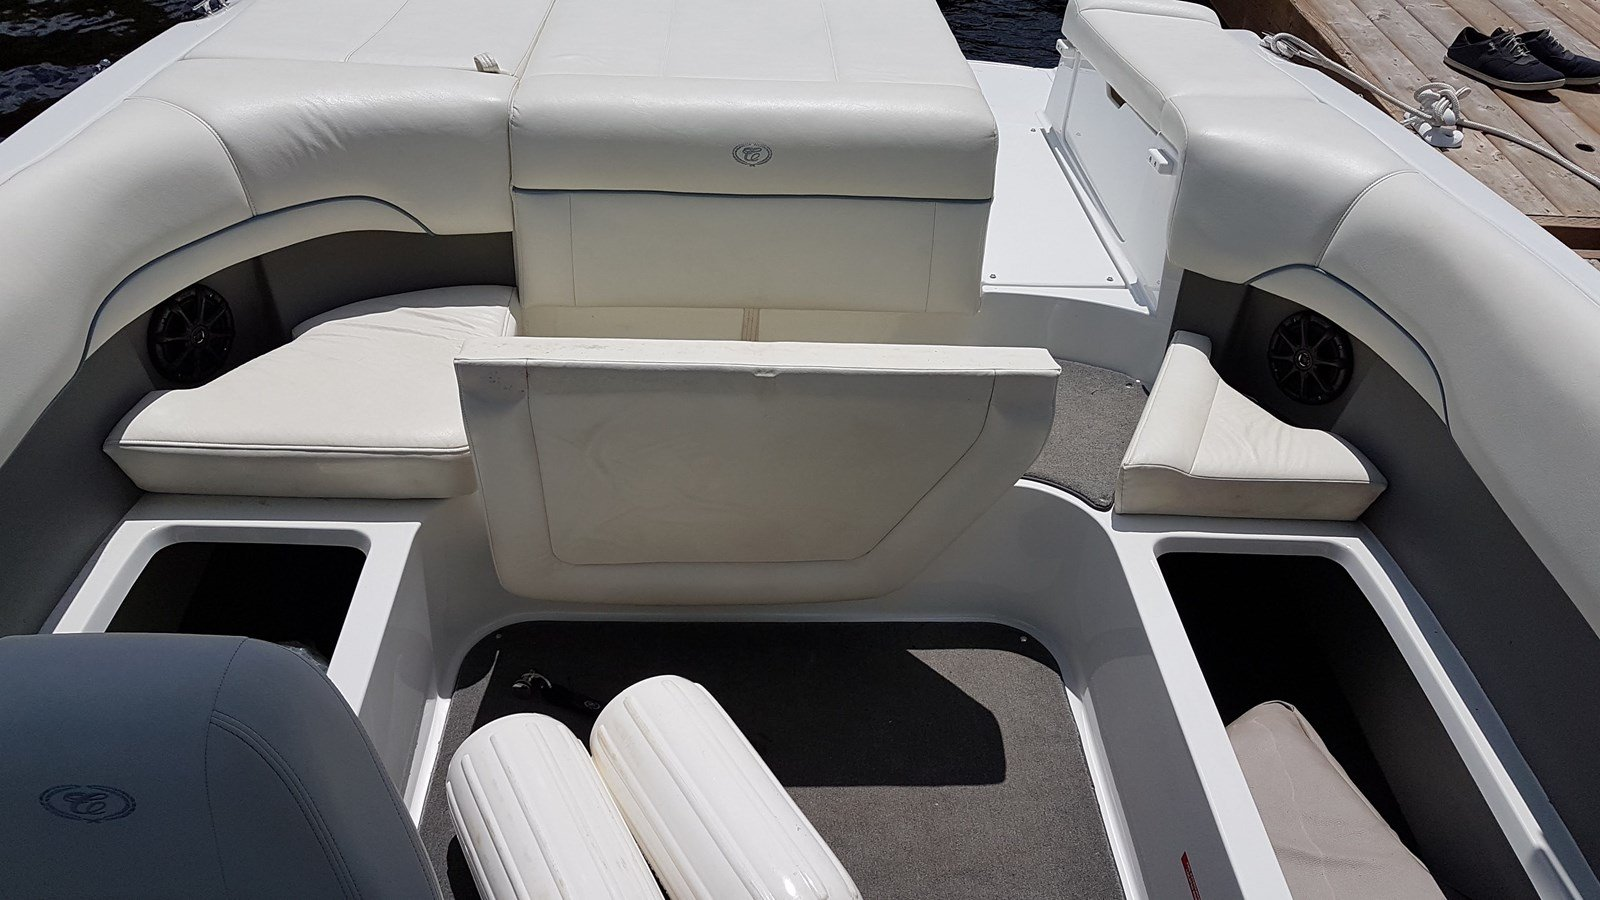 Pre-Owned 2012 Cobalt 220WSS Folding Tower Arch - Blue Hull - Tower Lights - Bimini Top